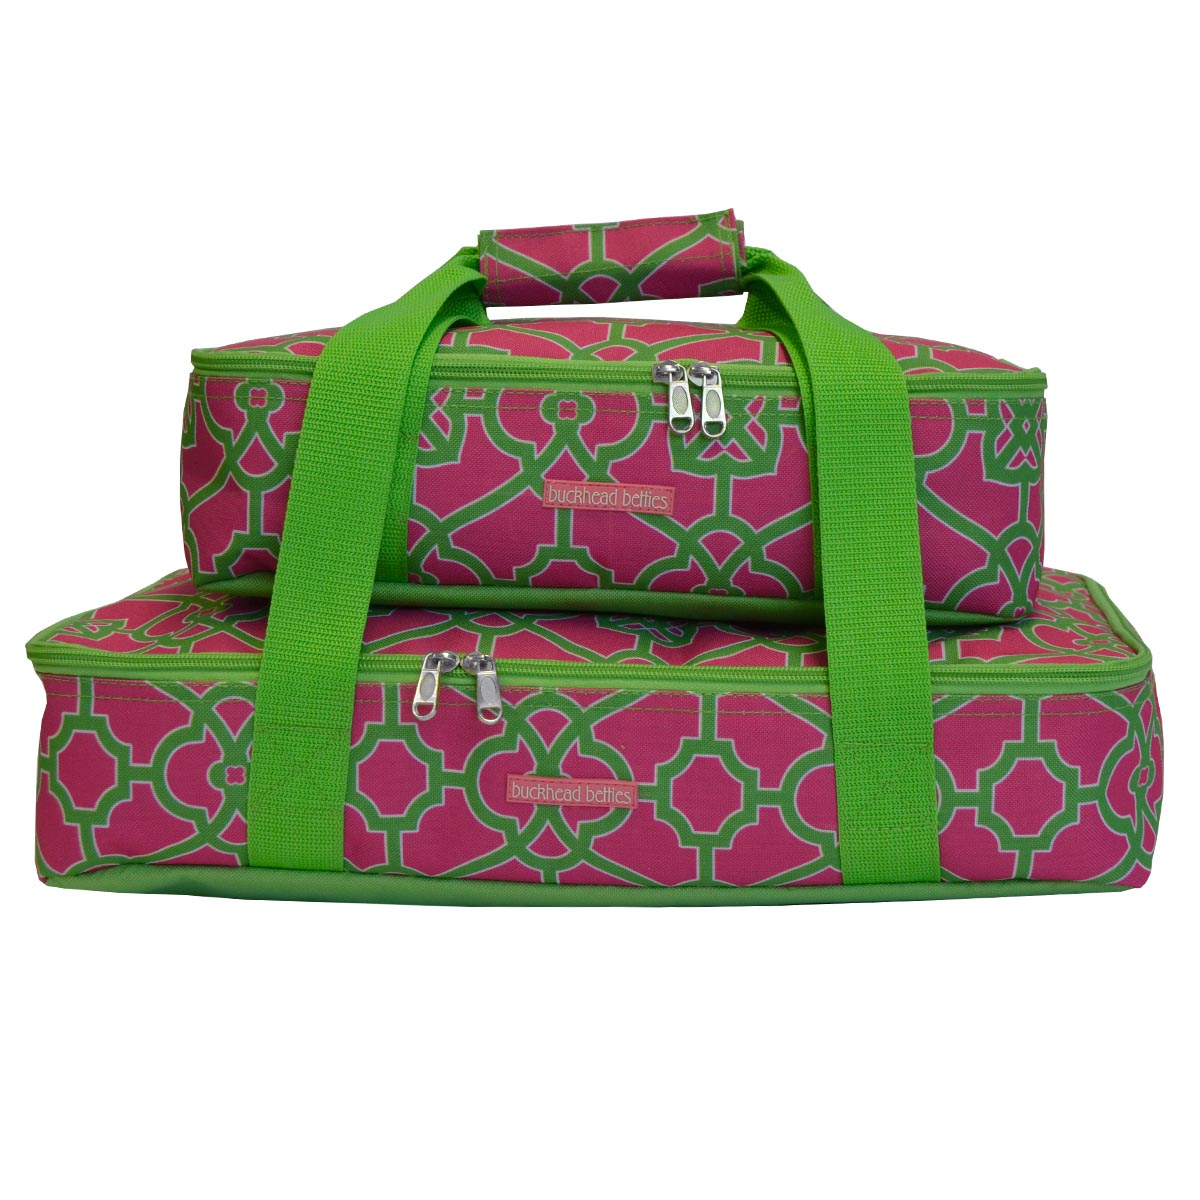 on the veranda pink/green 2 pc casserole